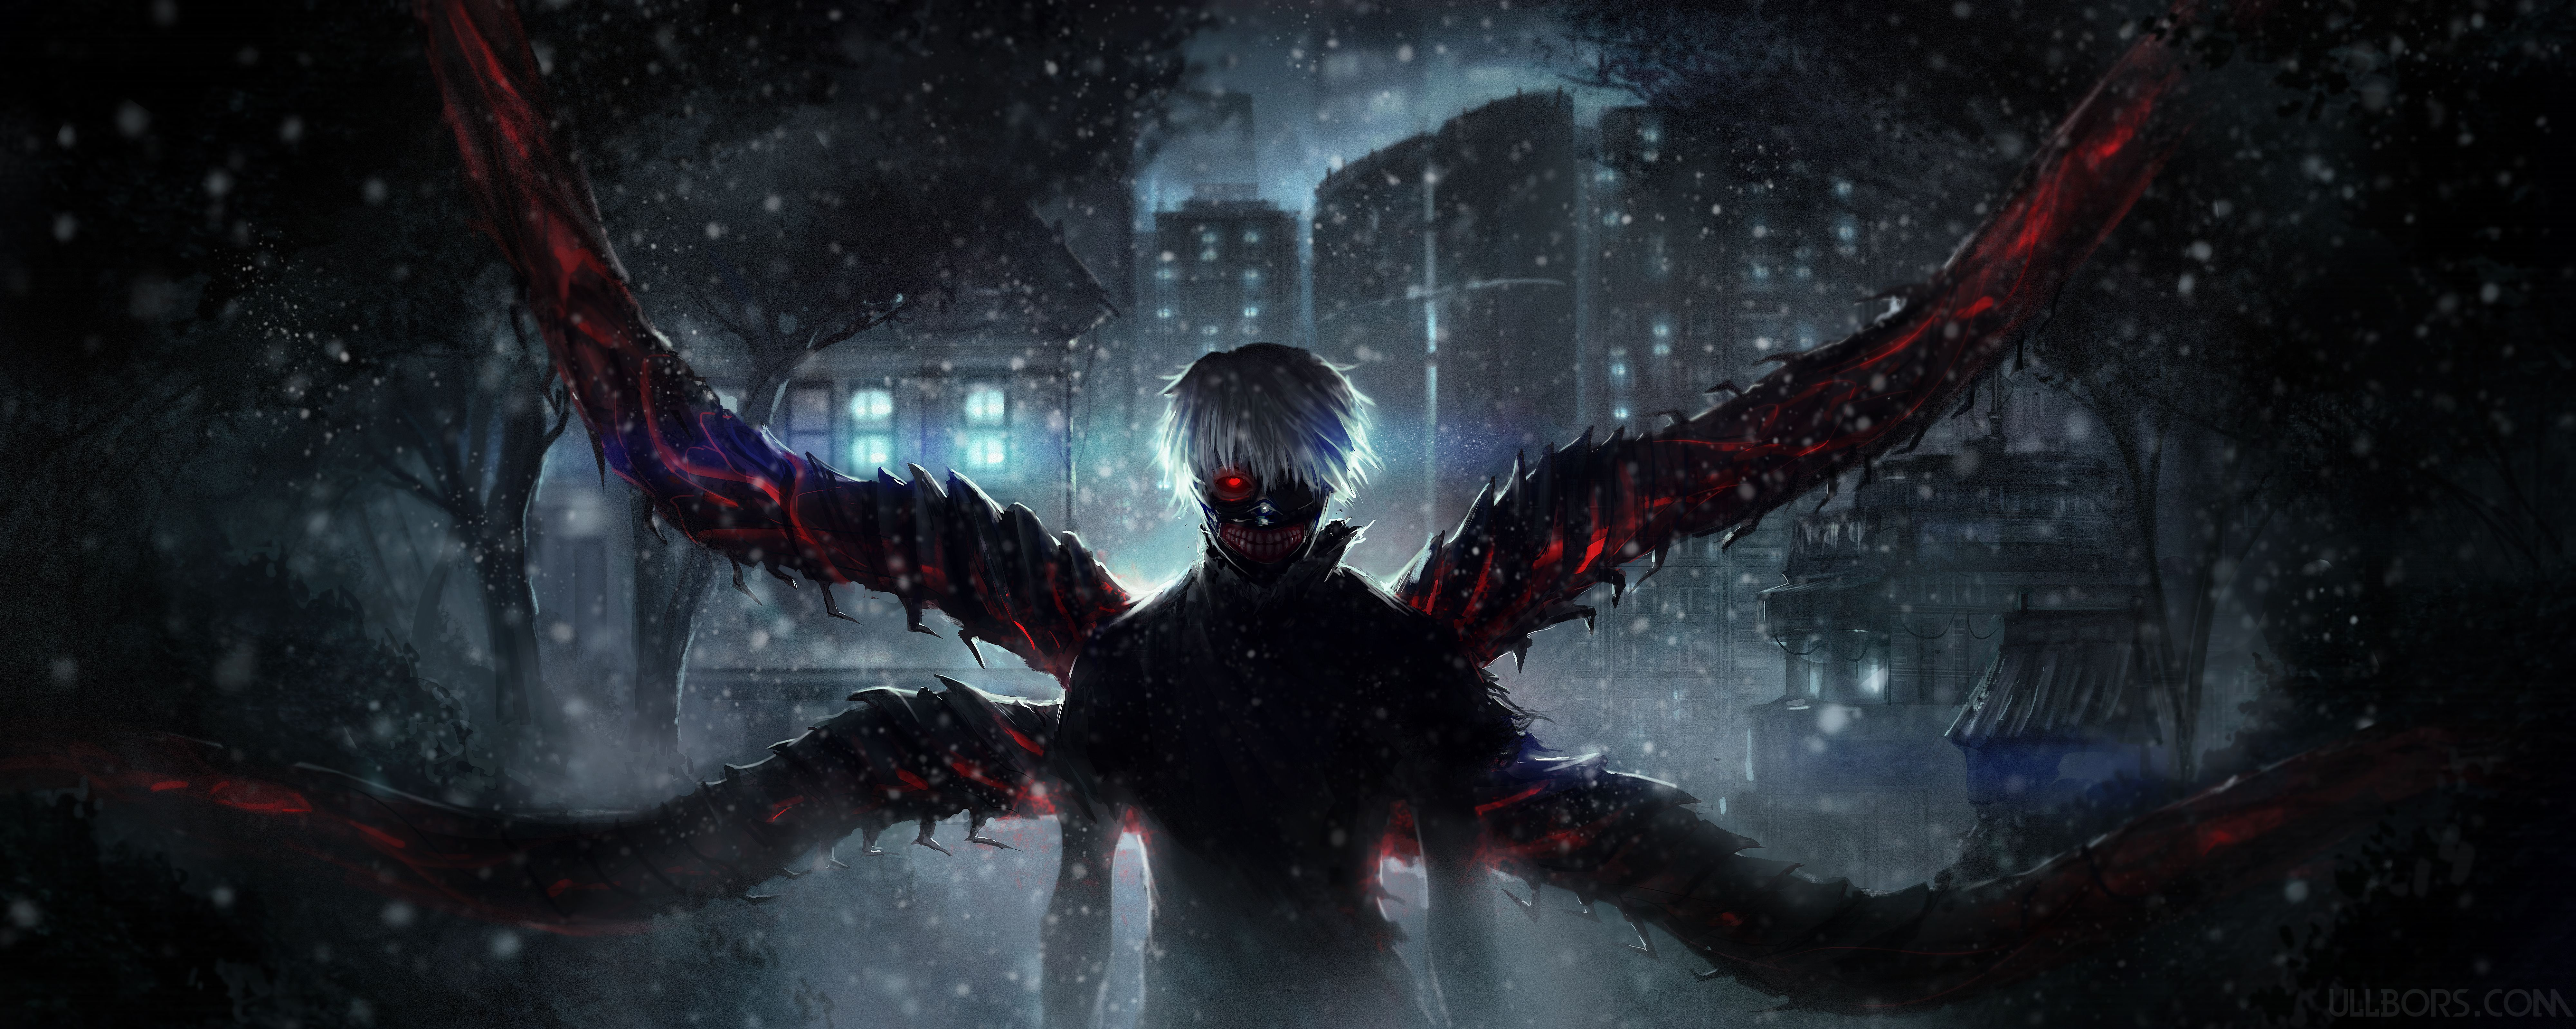 Tokyo Ghoul 4k Wallpapers Top Free Tokyo Ghoul 4k Backgrounds Wallpaperaccess